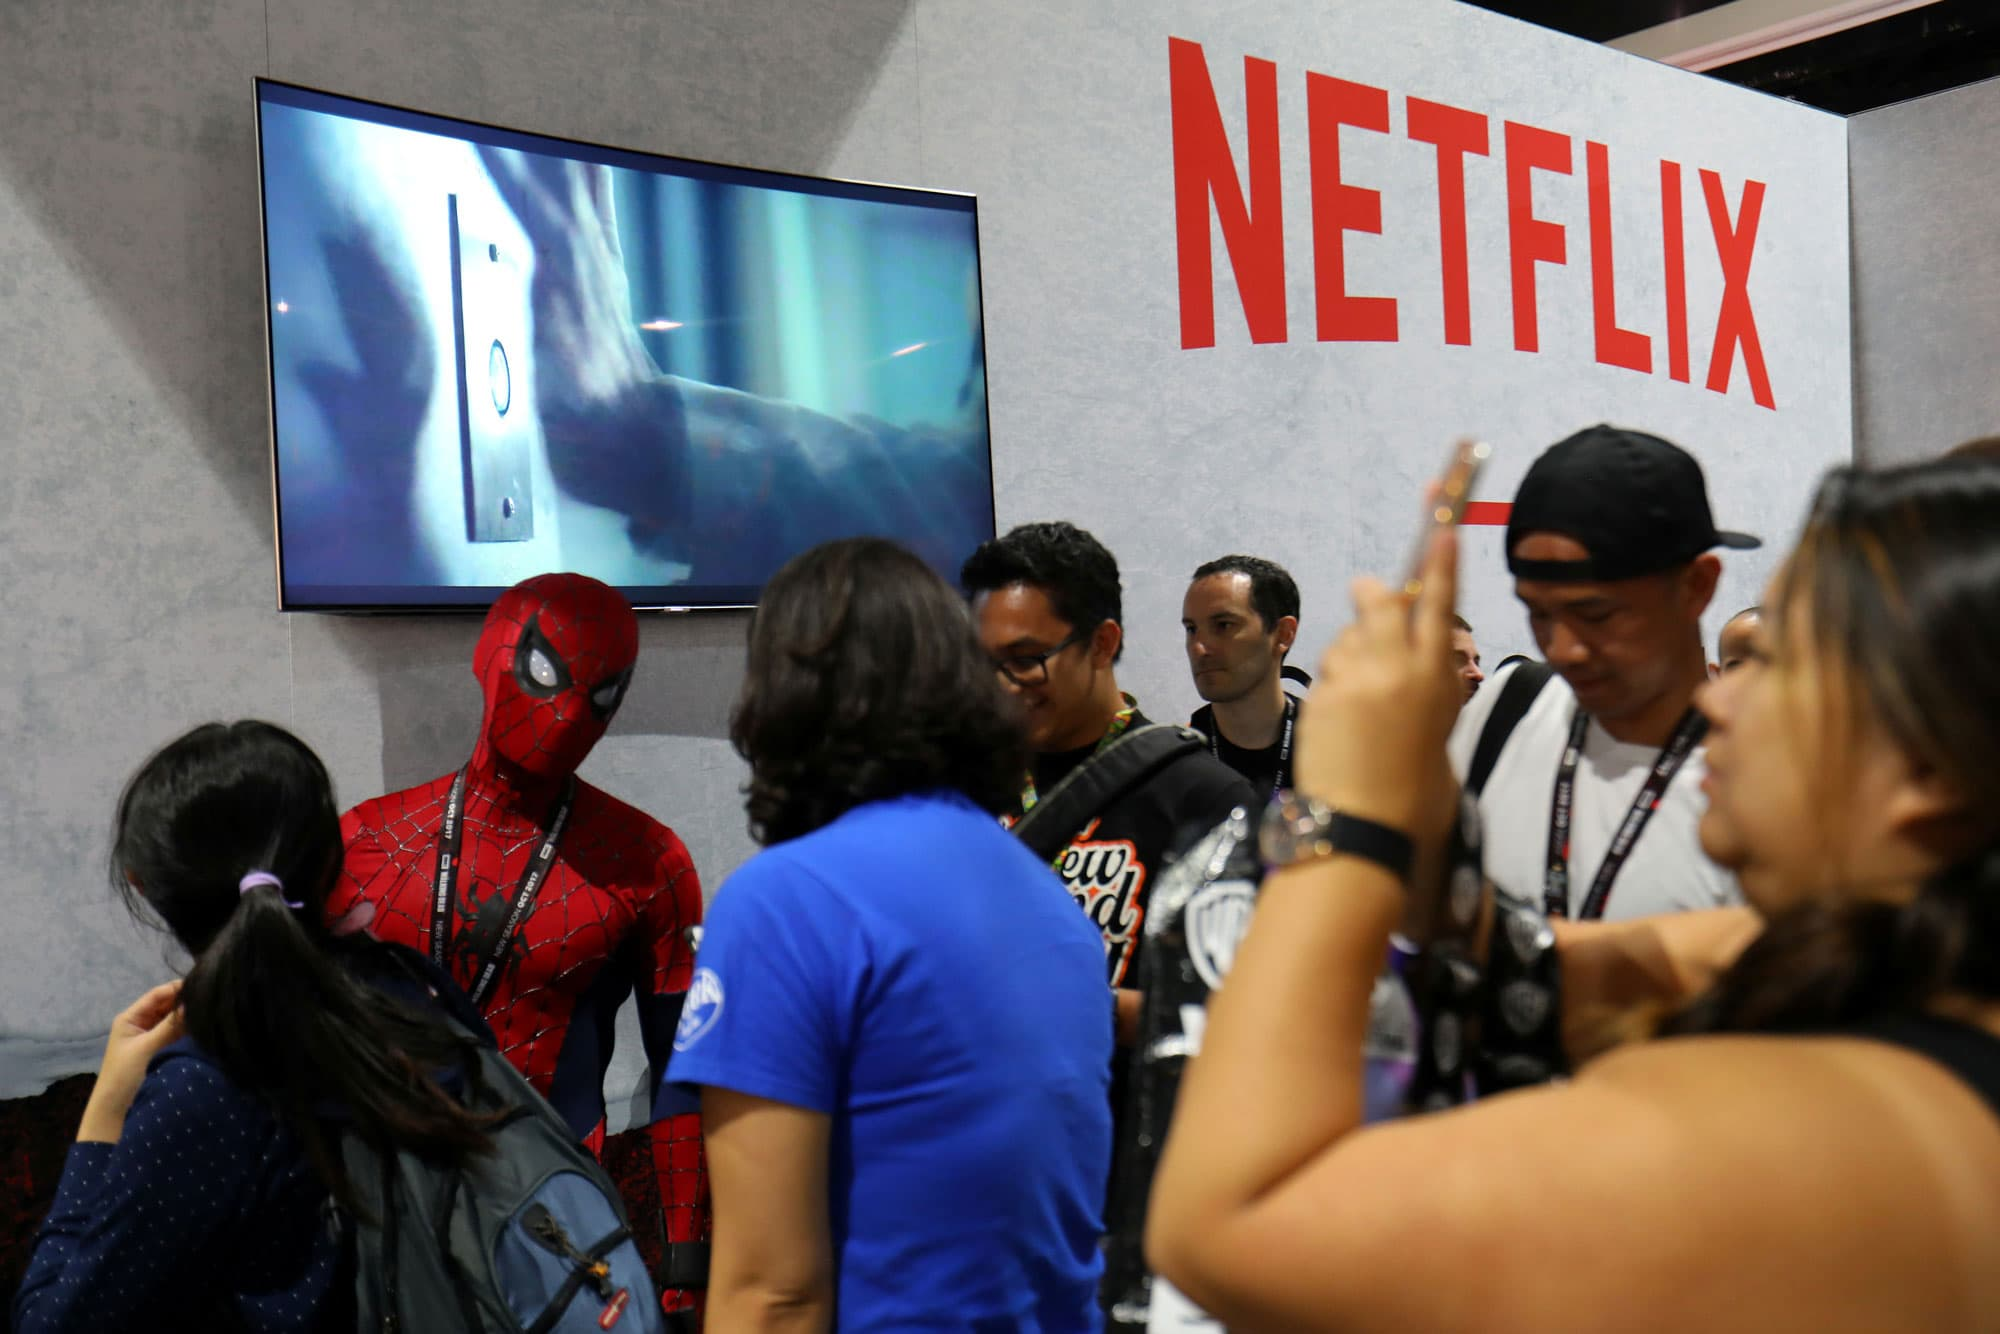 Netflix's pop is a chance to 'get short rather than long,' strategist says